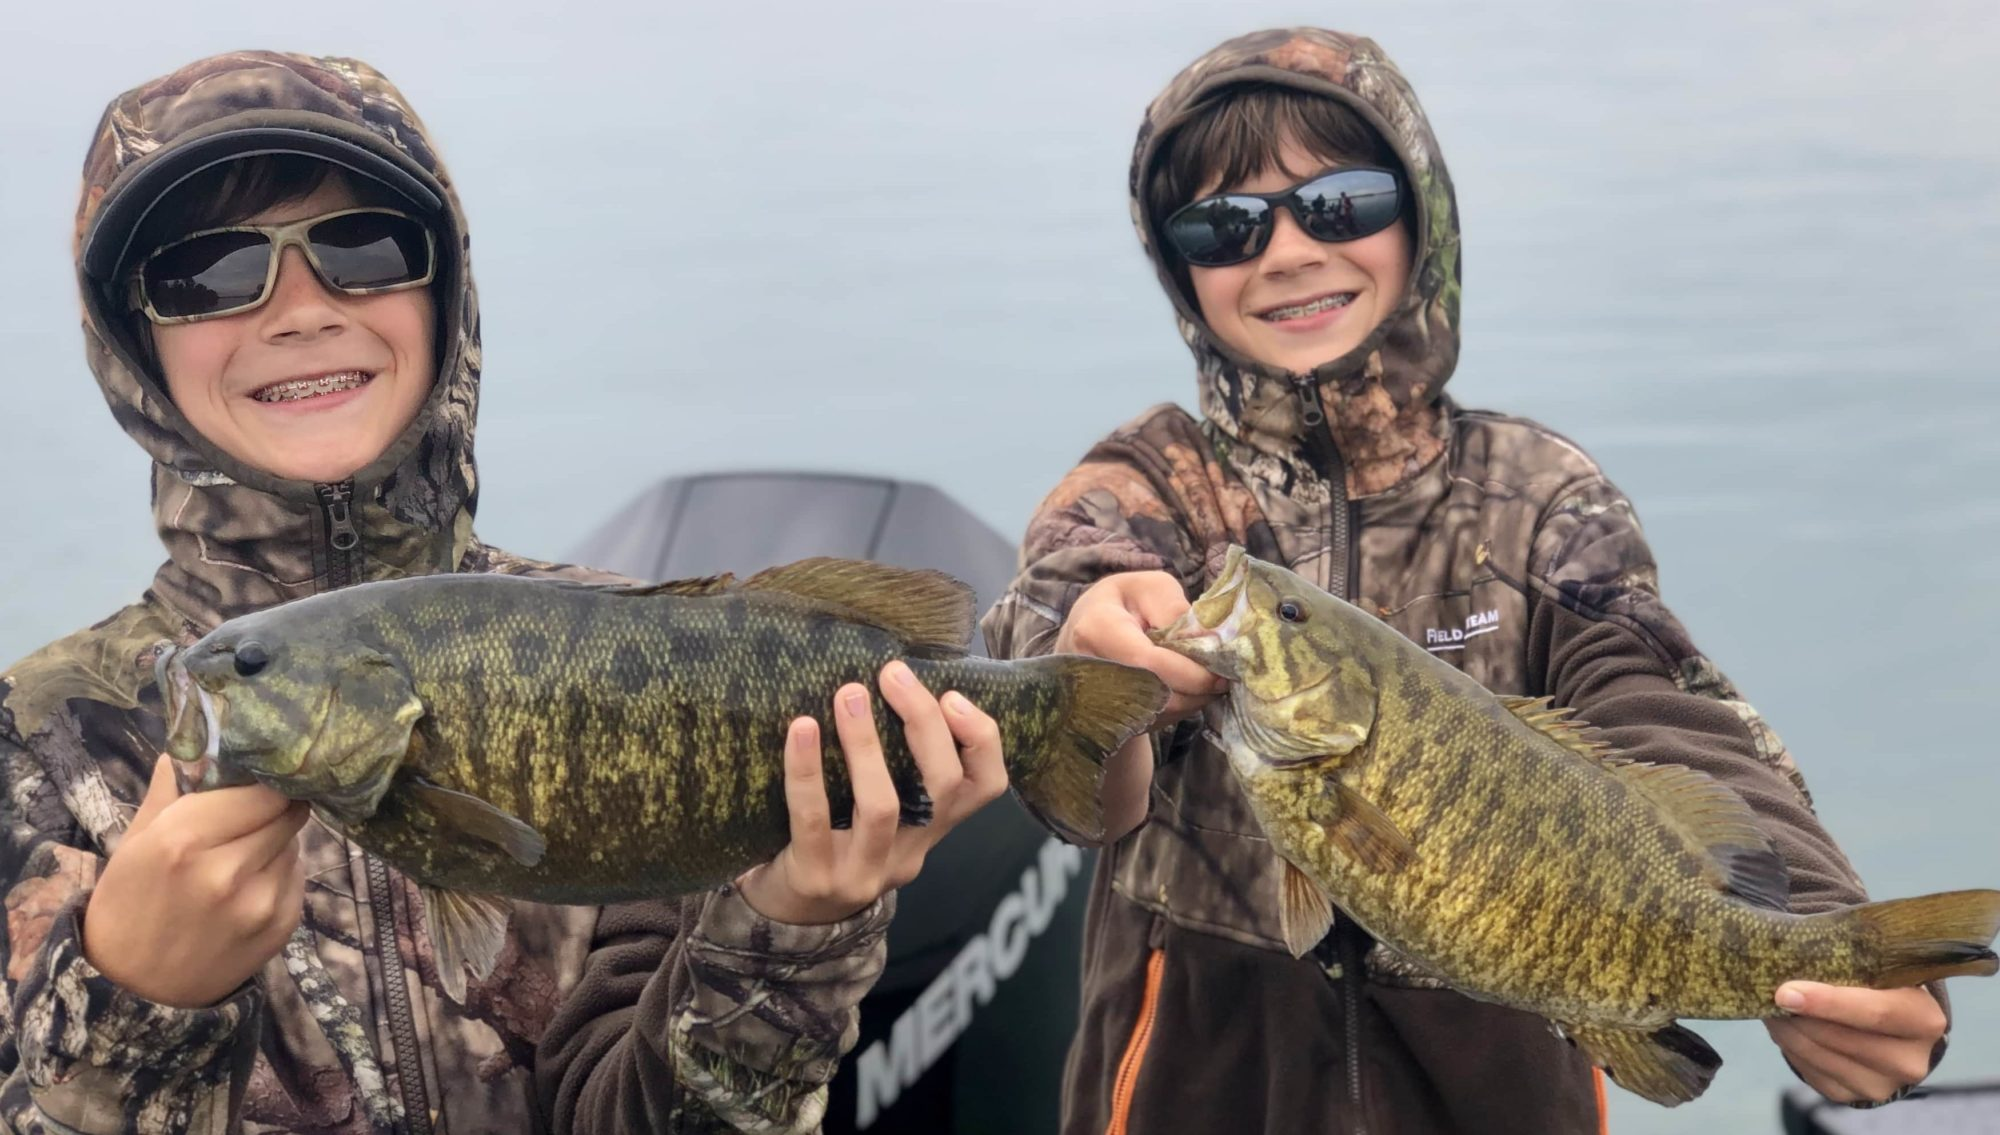 Brookdog Guided Fishing Trips & Charters